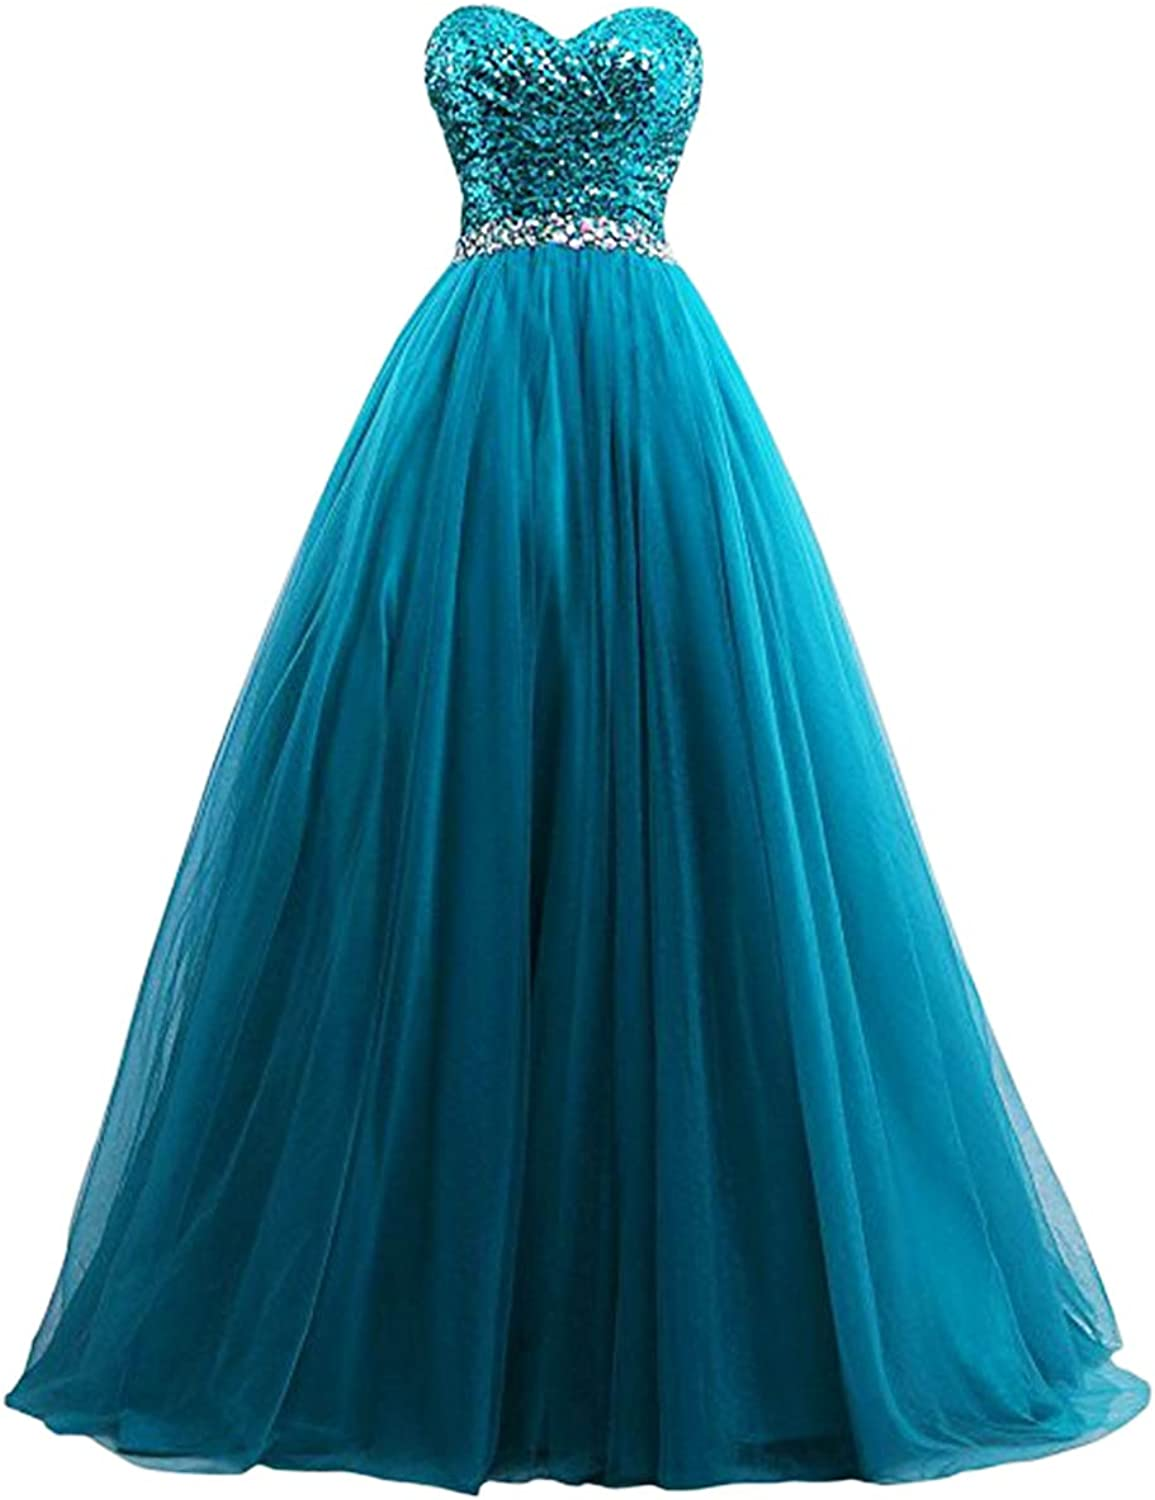 Beilite Women's Sweetheart Sequin Tulle Long Prom Quinceanera Dresses